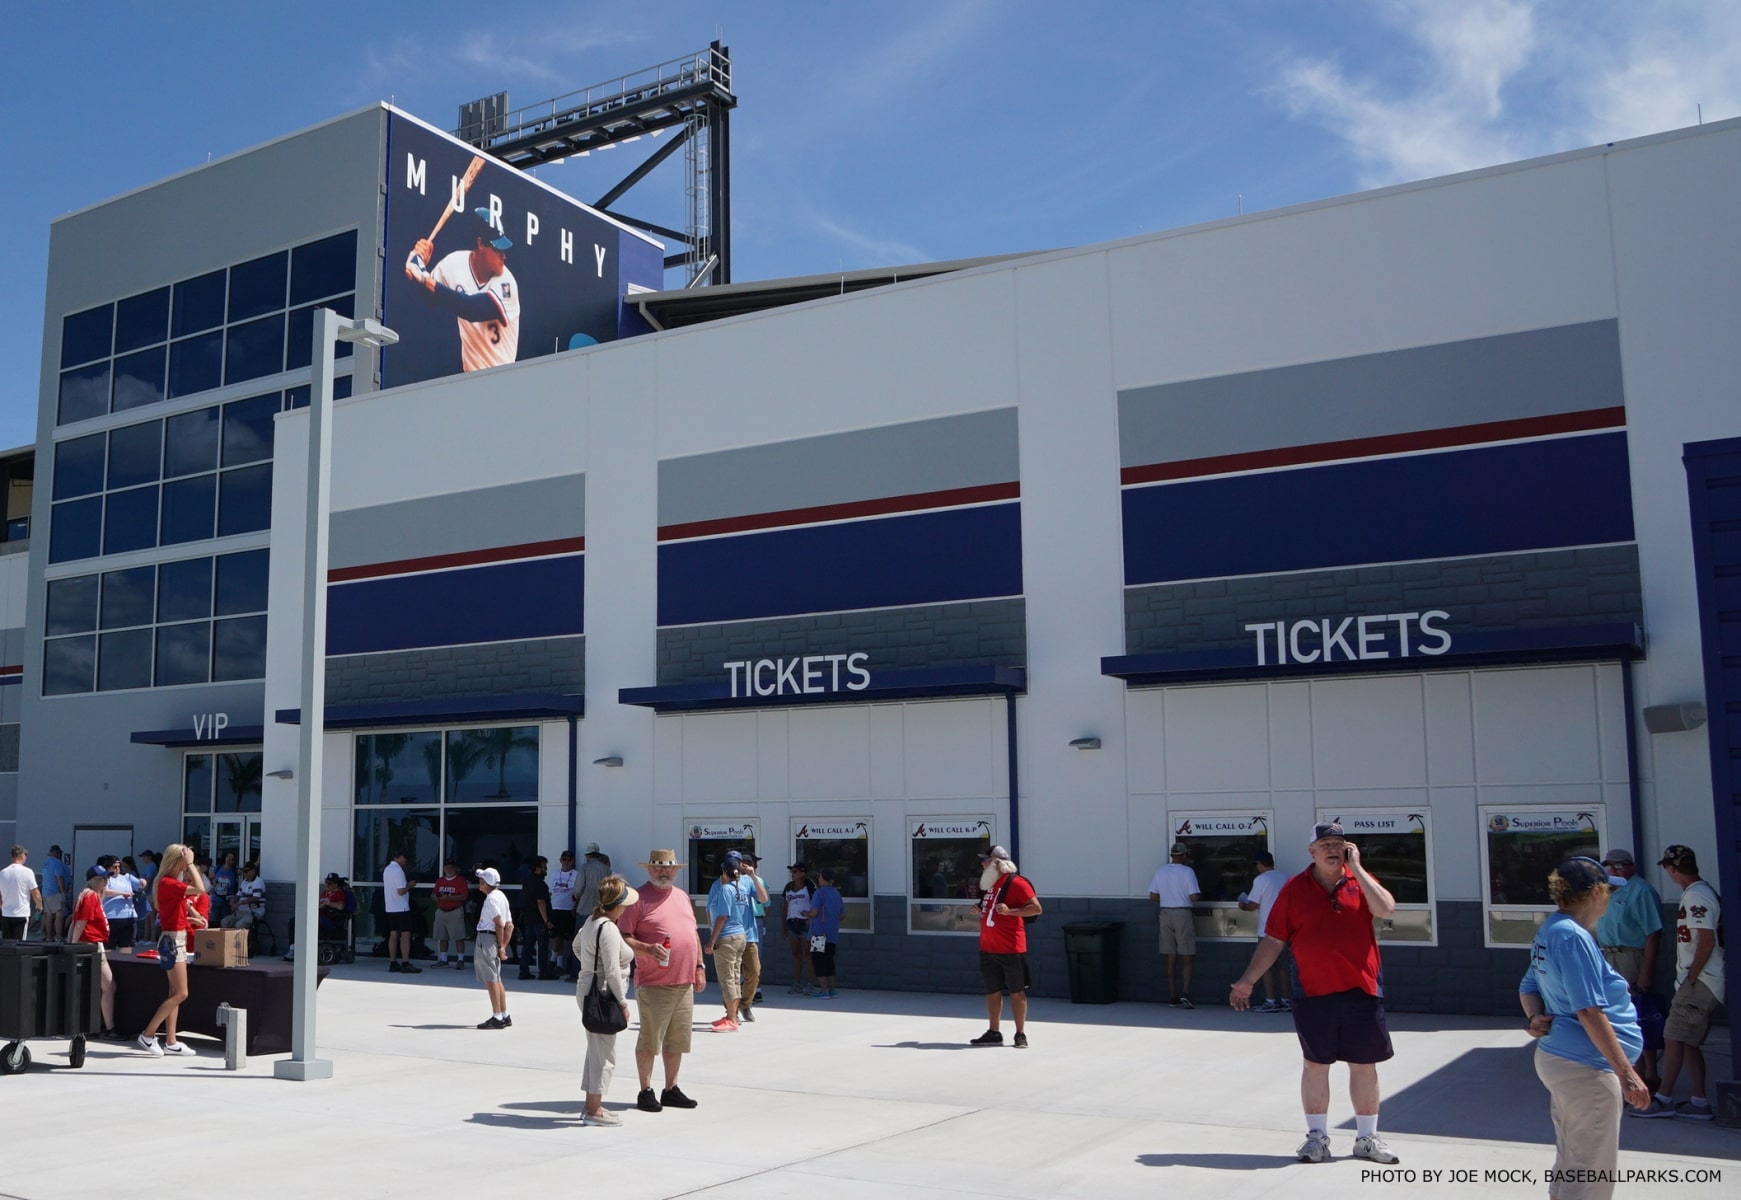 603-Ticket-Windows-at-Cool-Park-Atlanta-Braves-Spring-Training